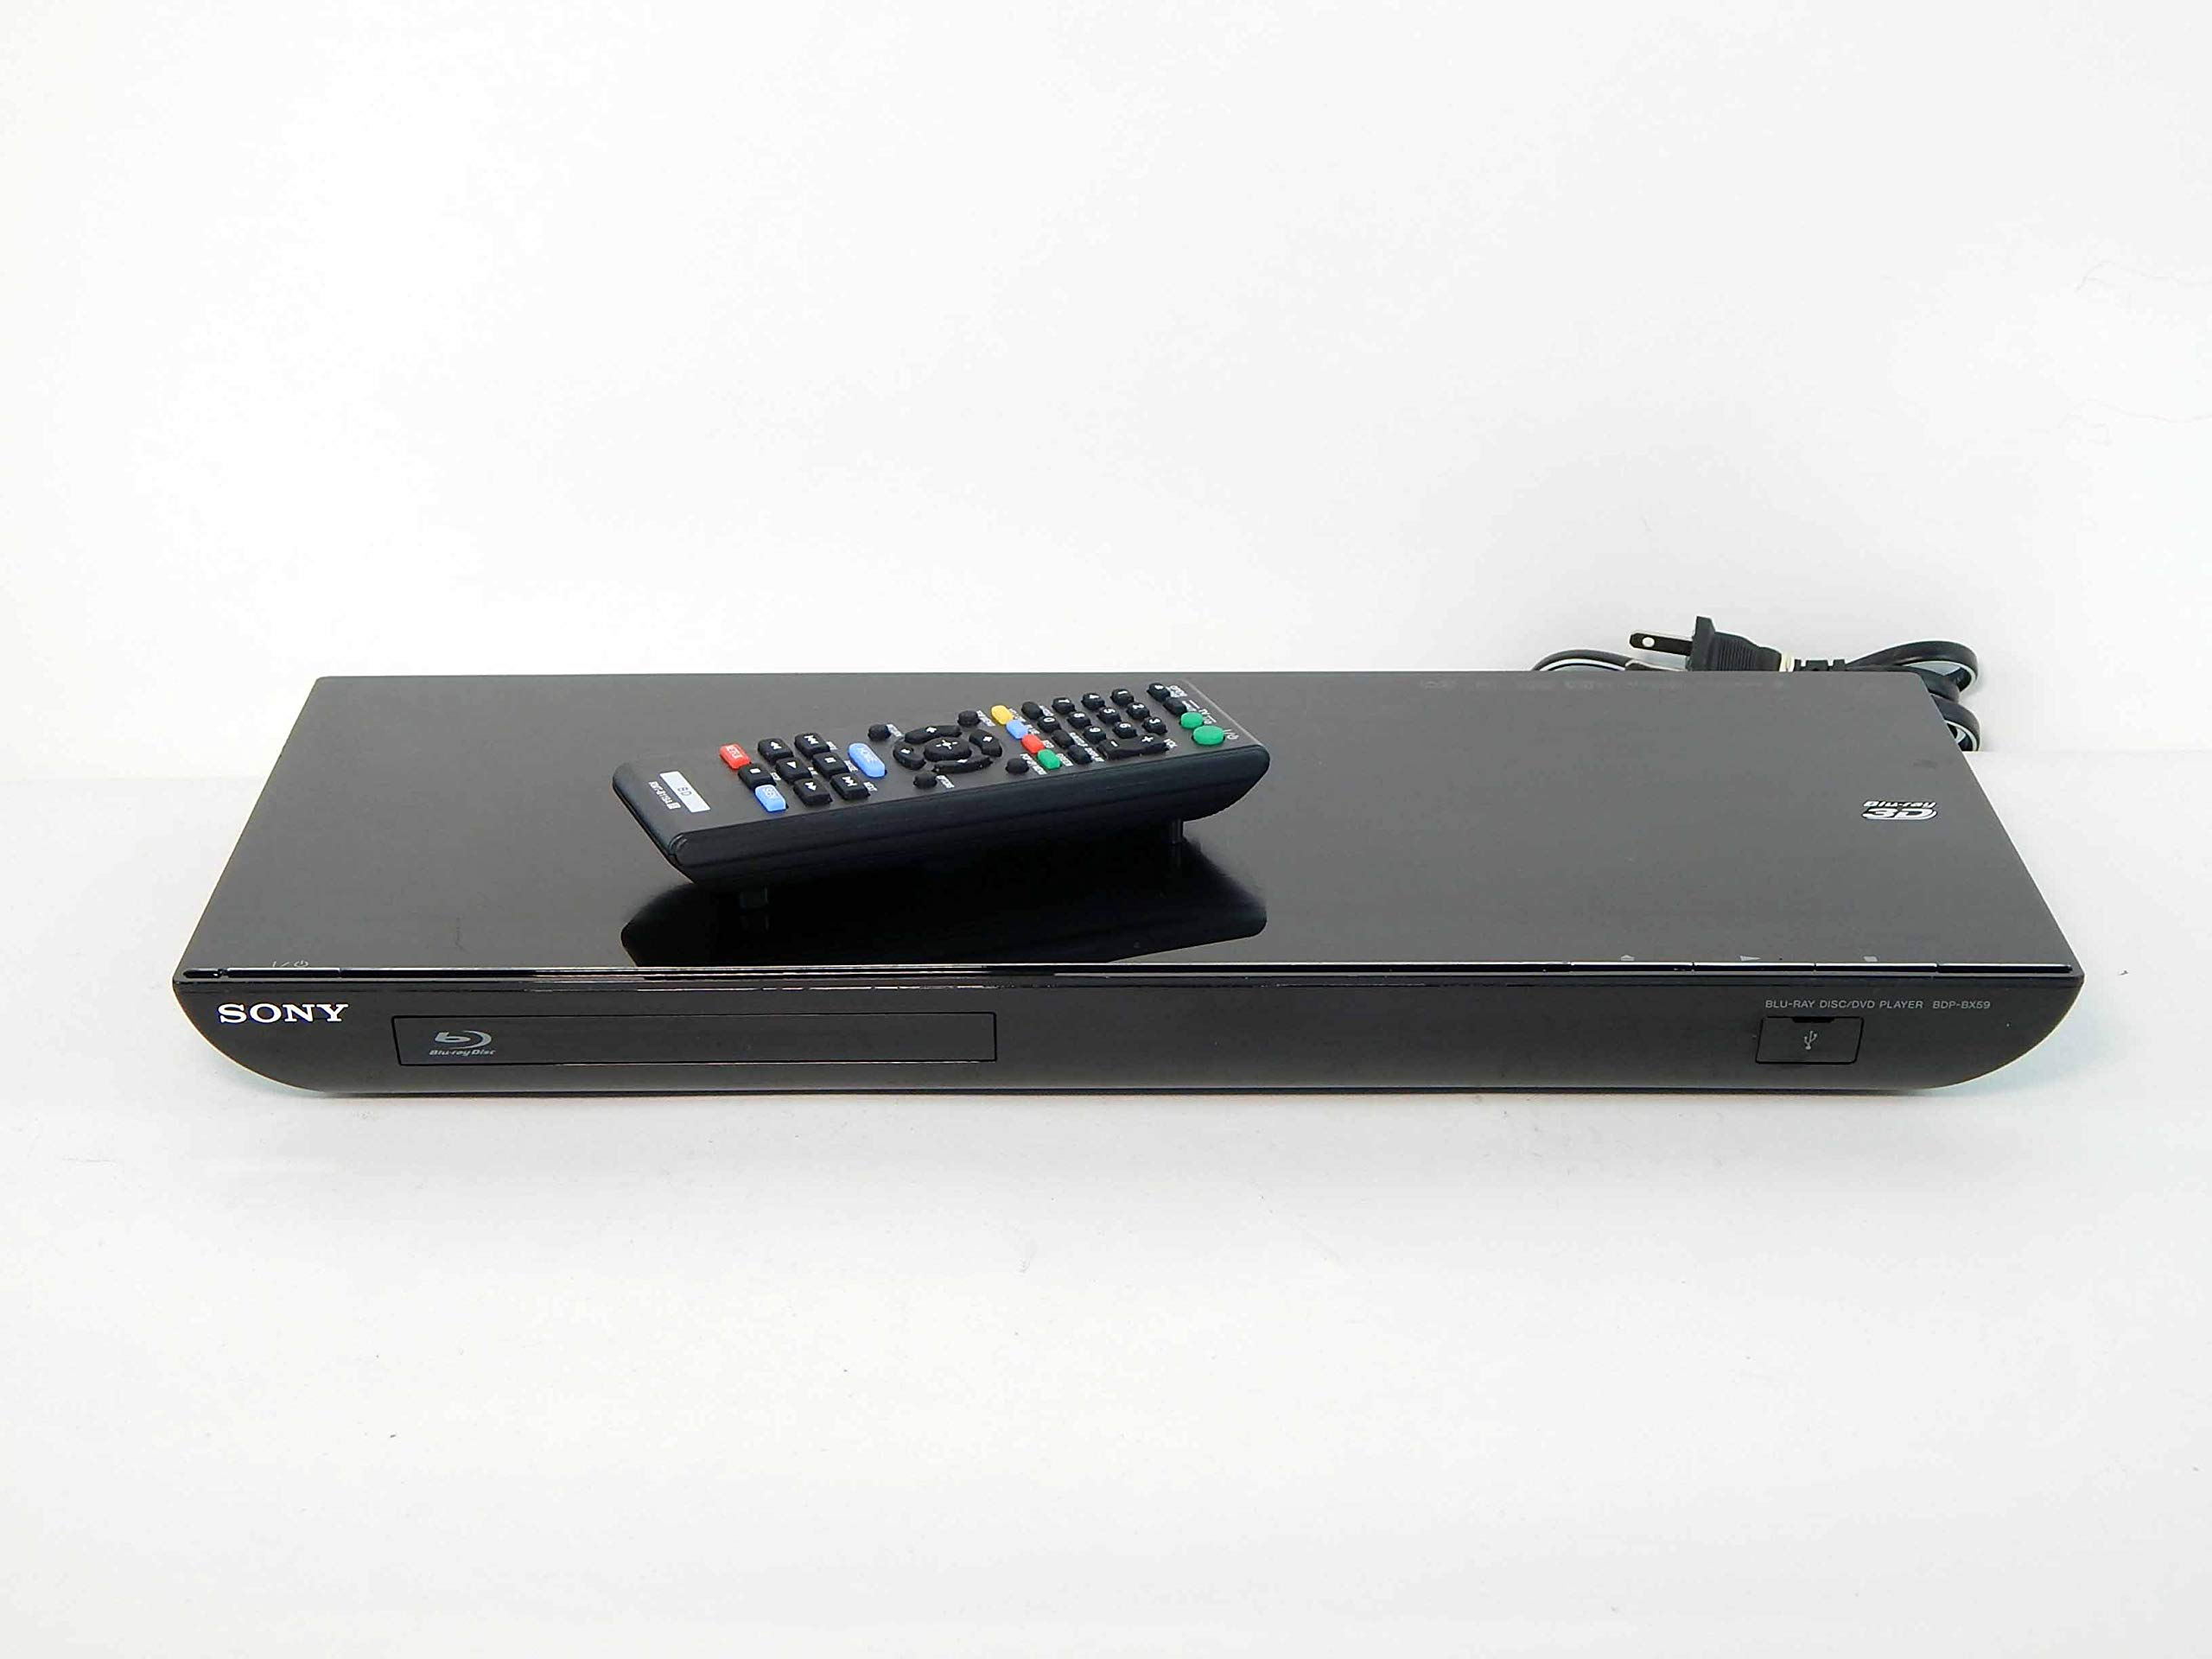 Amazon Com Sony Bdp Bx59 1080p 3d Blu Ray Dvd Player Built In Wifi Netflix Internet Apps Electronics